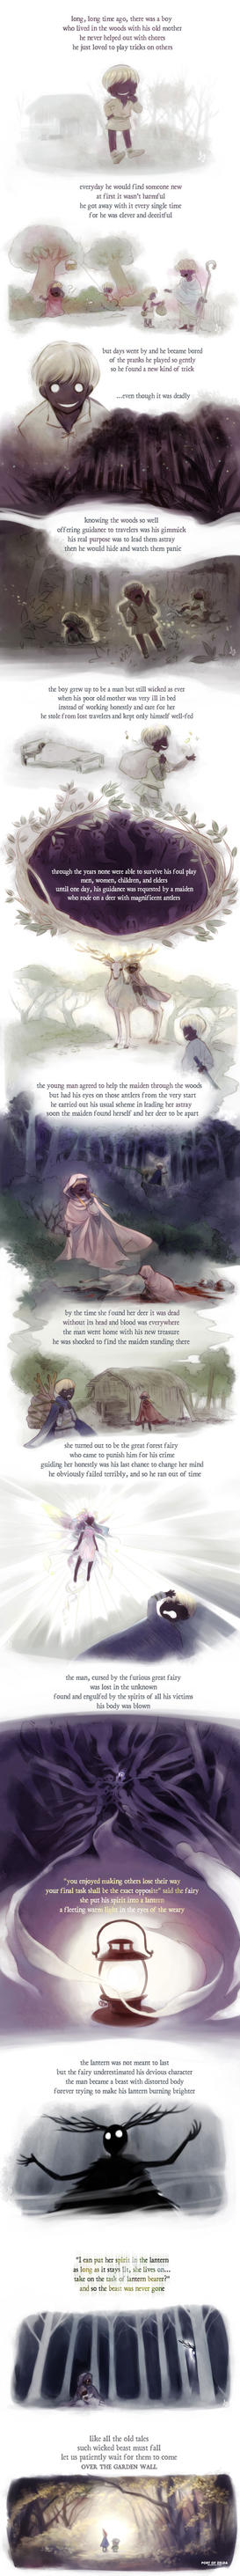 From a boy to the Beast by zeldacw